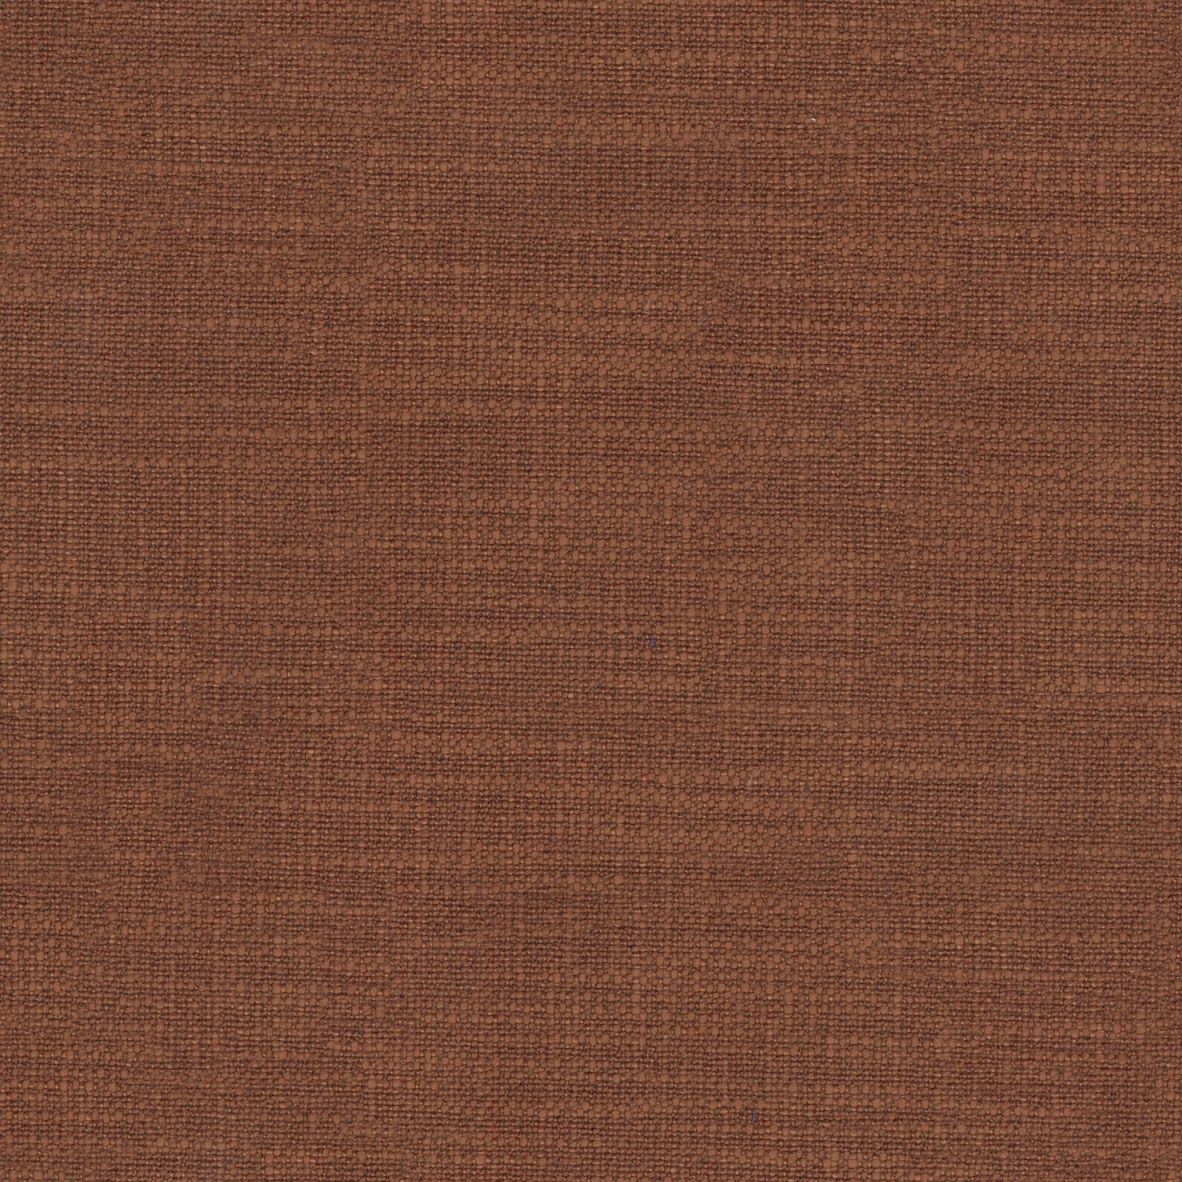 Brown bed sheets texture - Texture